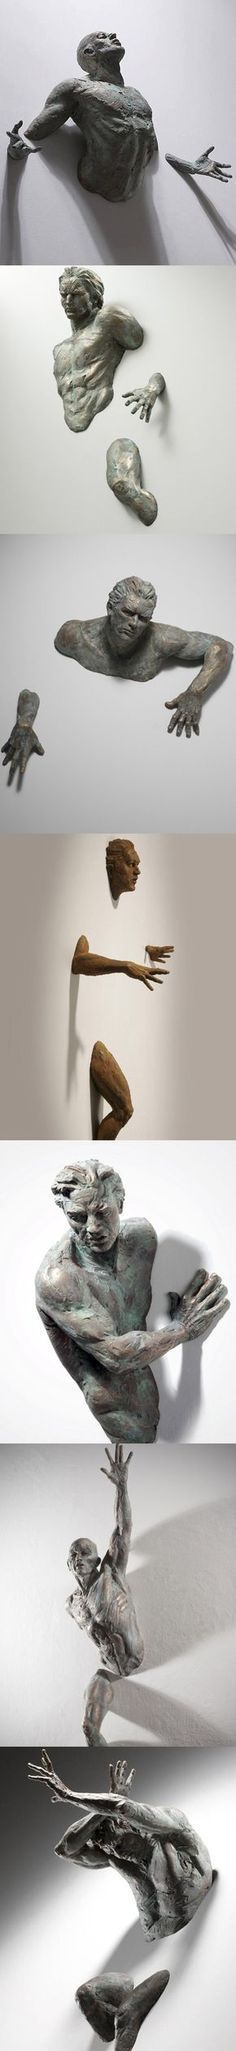 By Matteo Pugliese A great study of the figure in motion, amazing ceramic sculpture. I love that it is emerging from the surface. Instalation Art, Land Art, Art Plastique, Oeuvre D'art, Amazing Art, Awesome, Sculpting, Cool Art, Contemporary Art